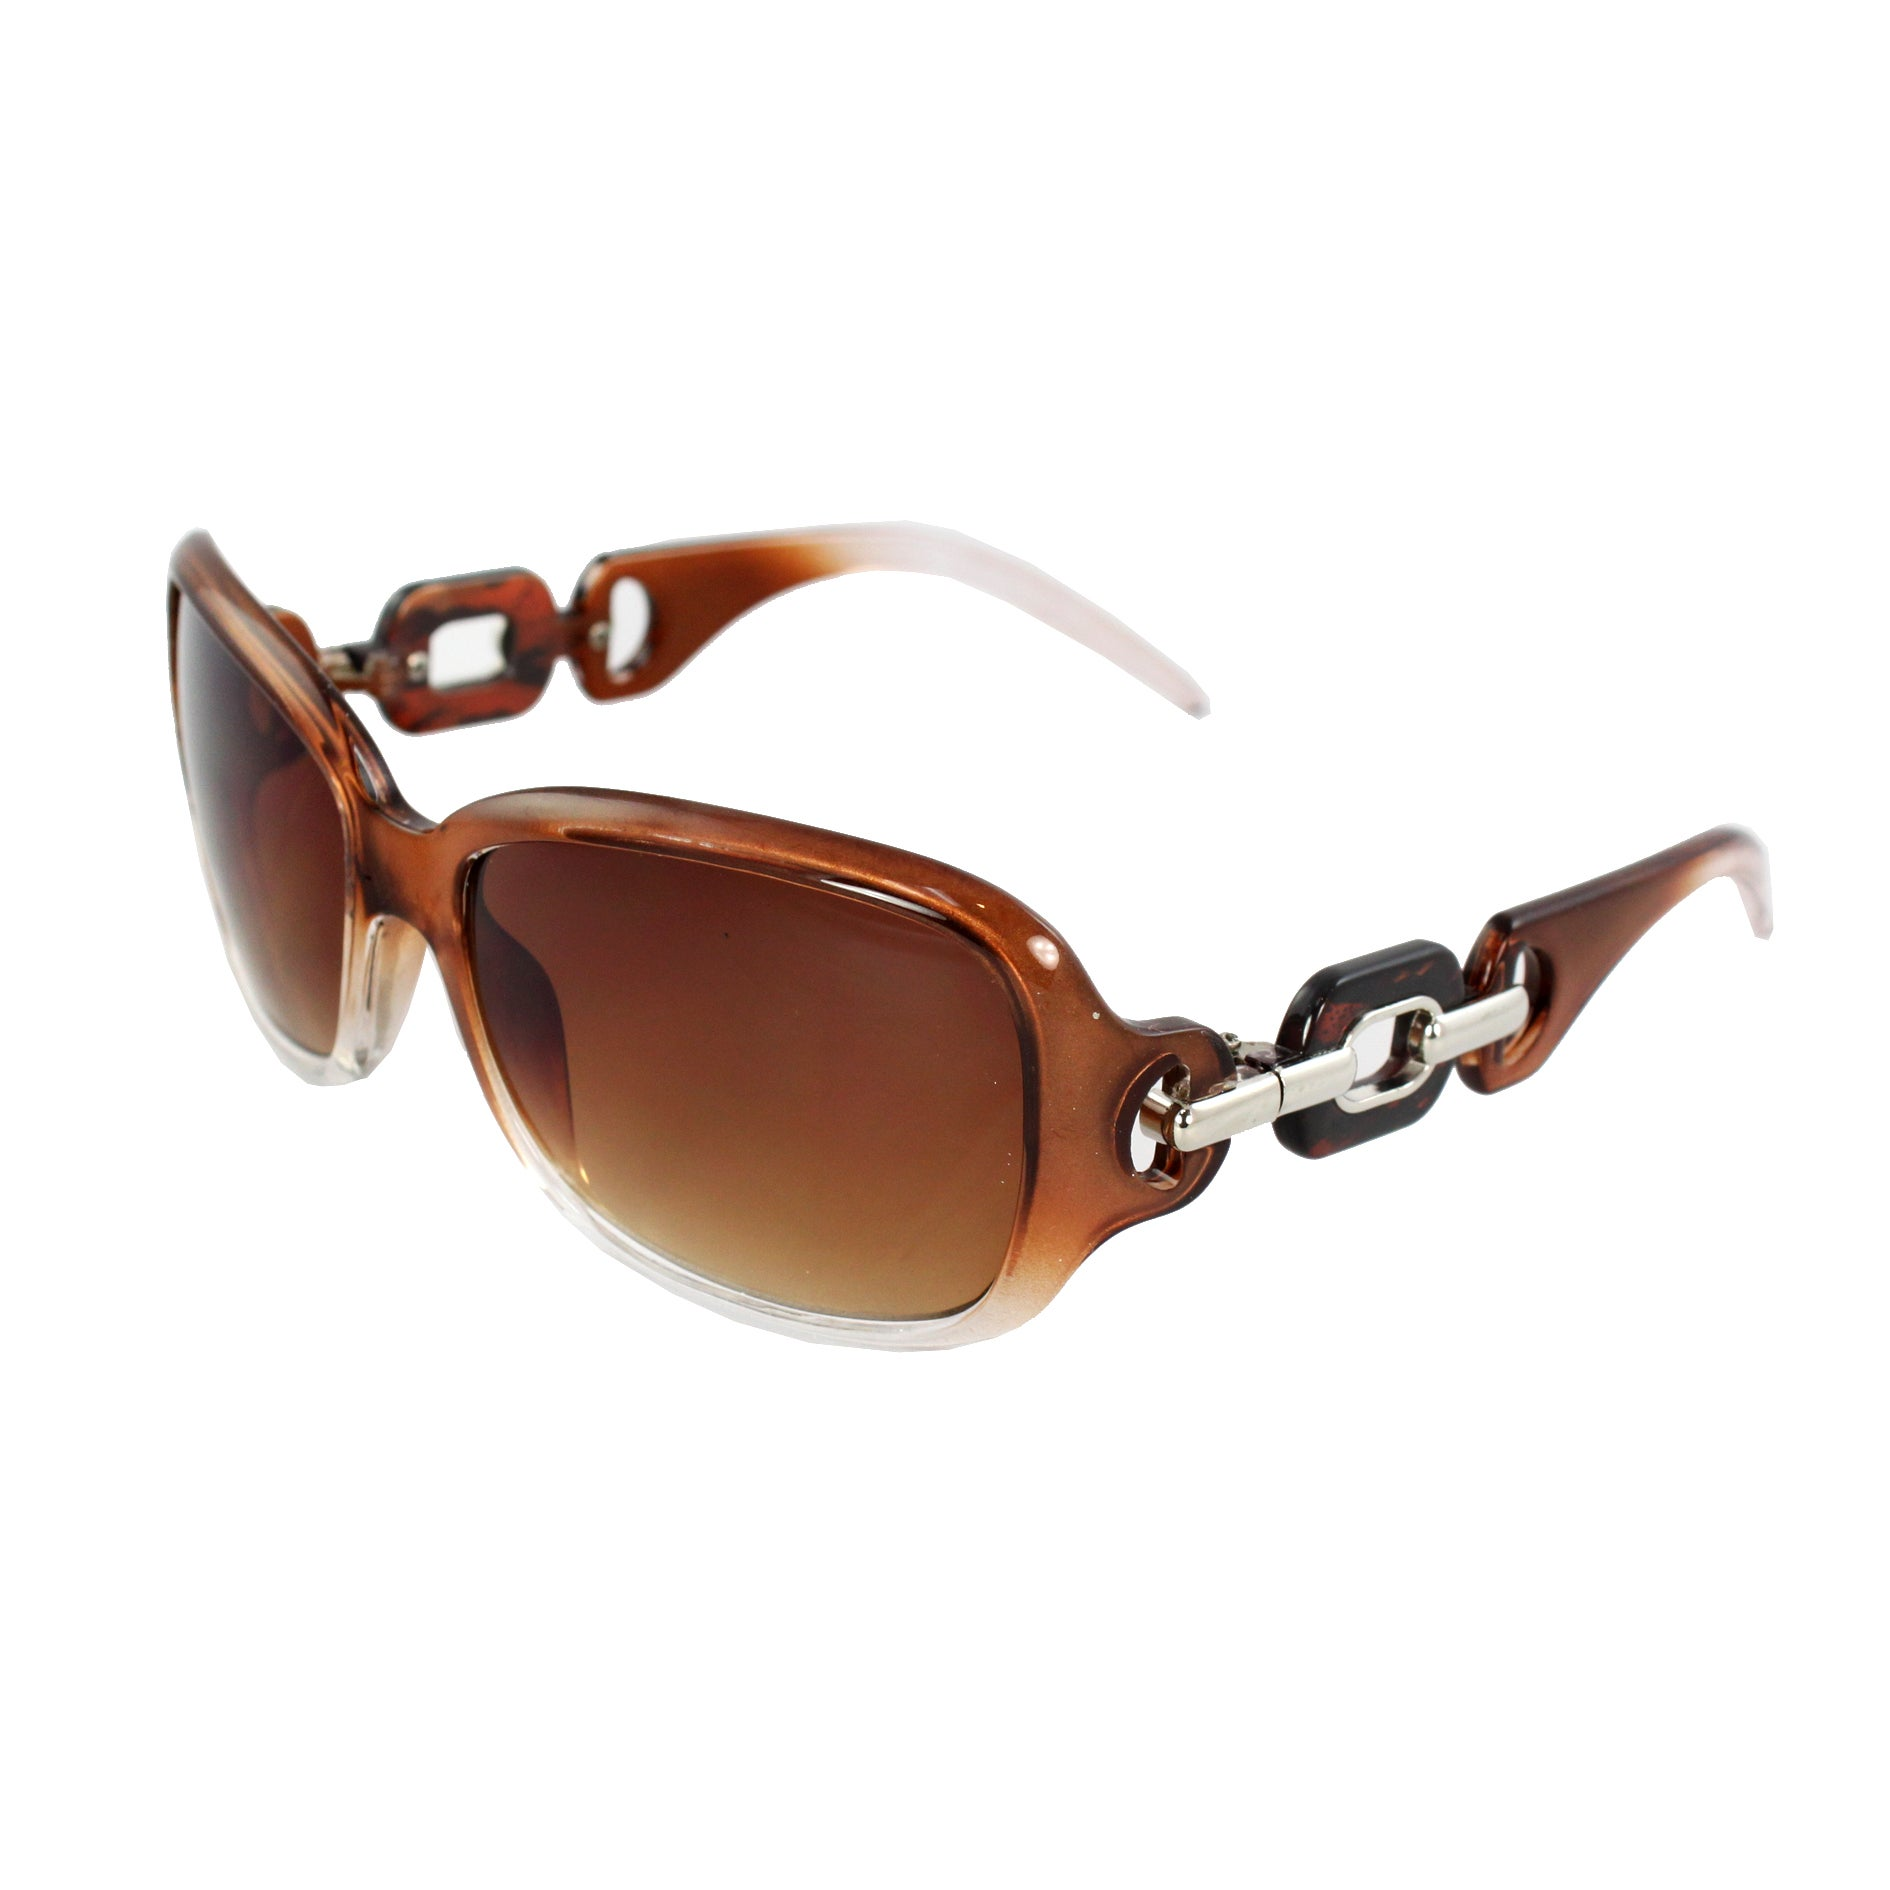 Square Fashion Sunglasses Brown Clear 2tone Frame Amber Lenses for Women